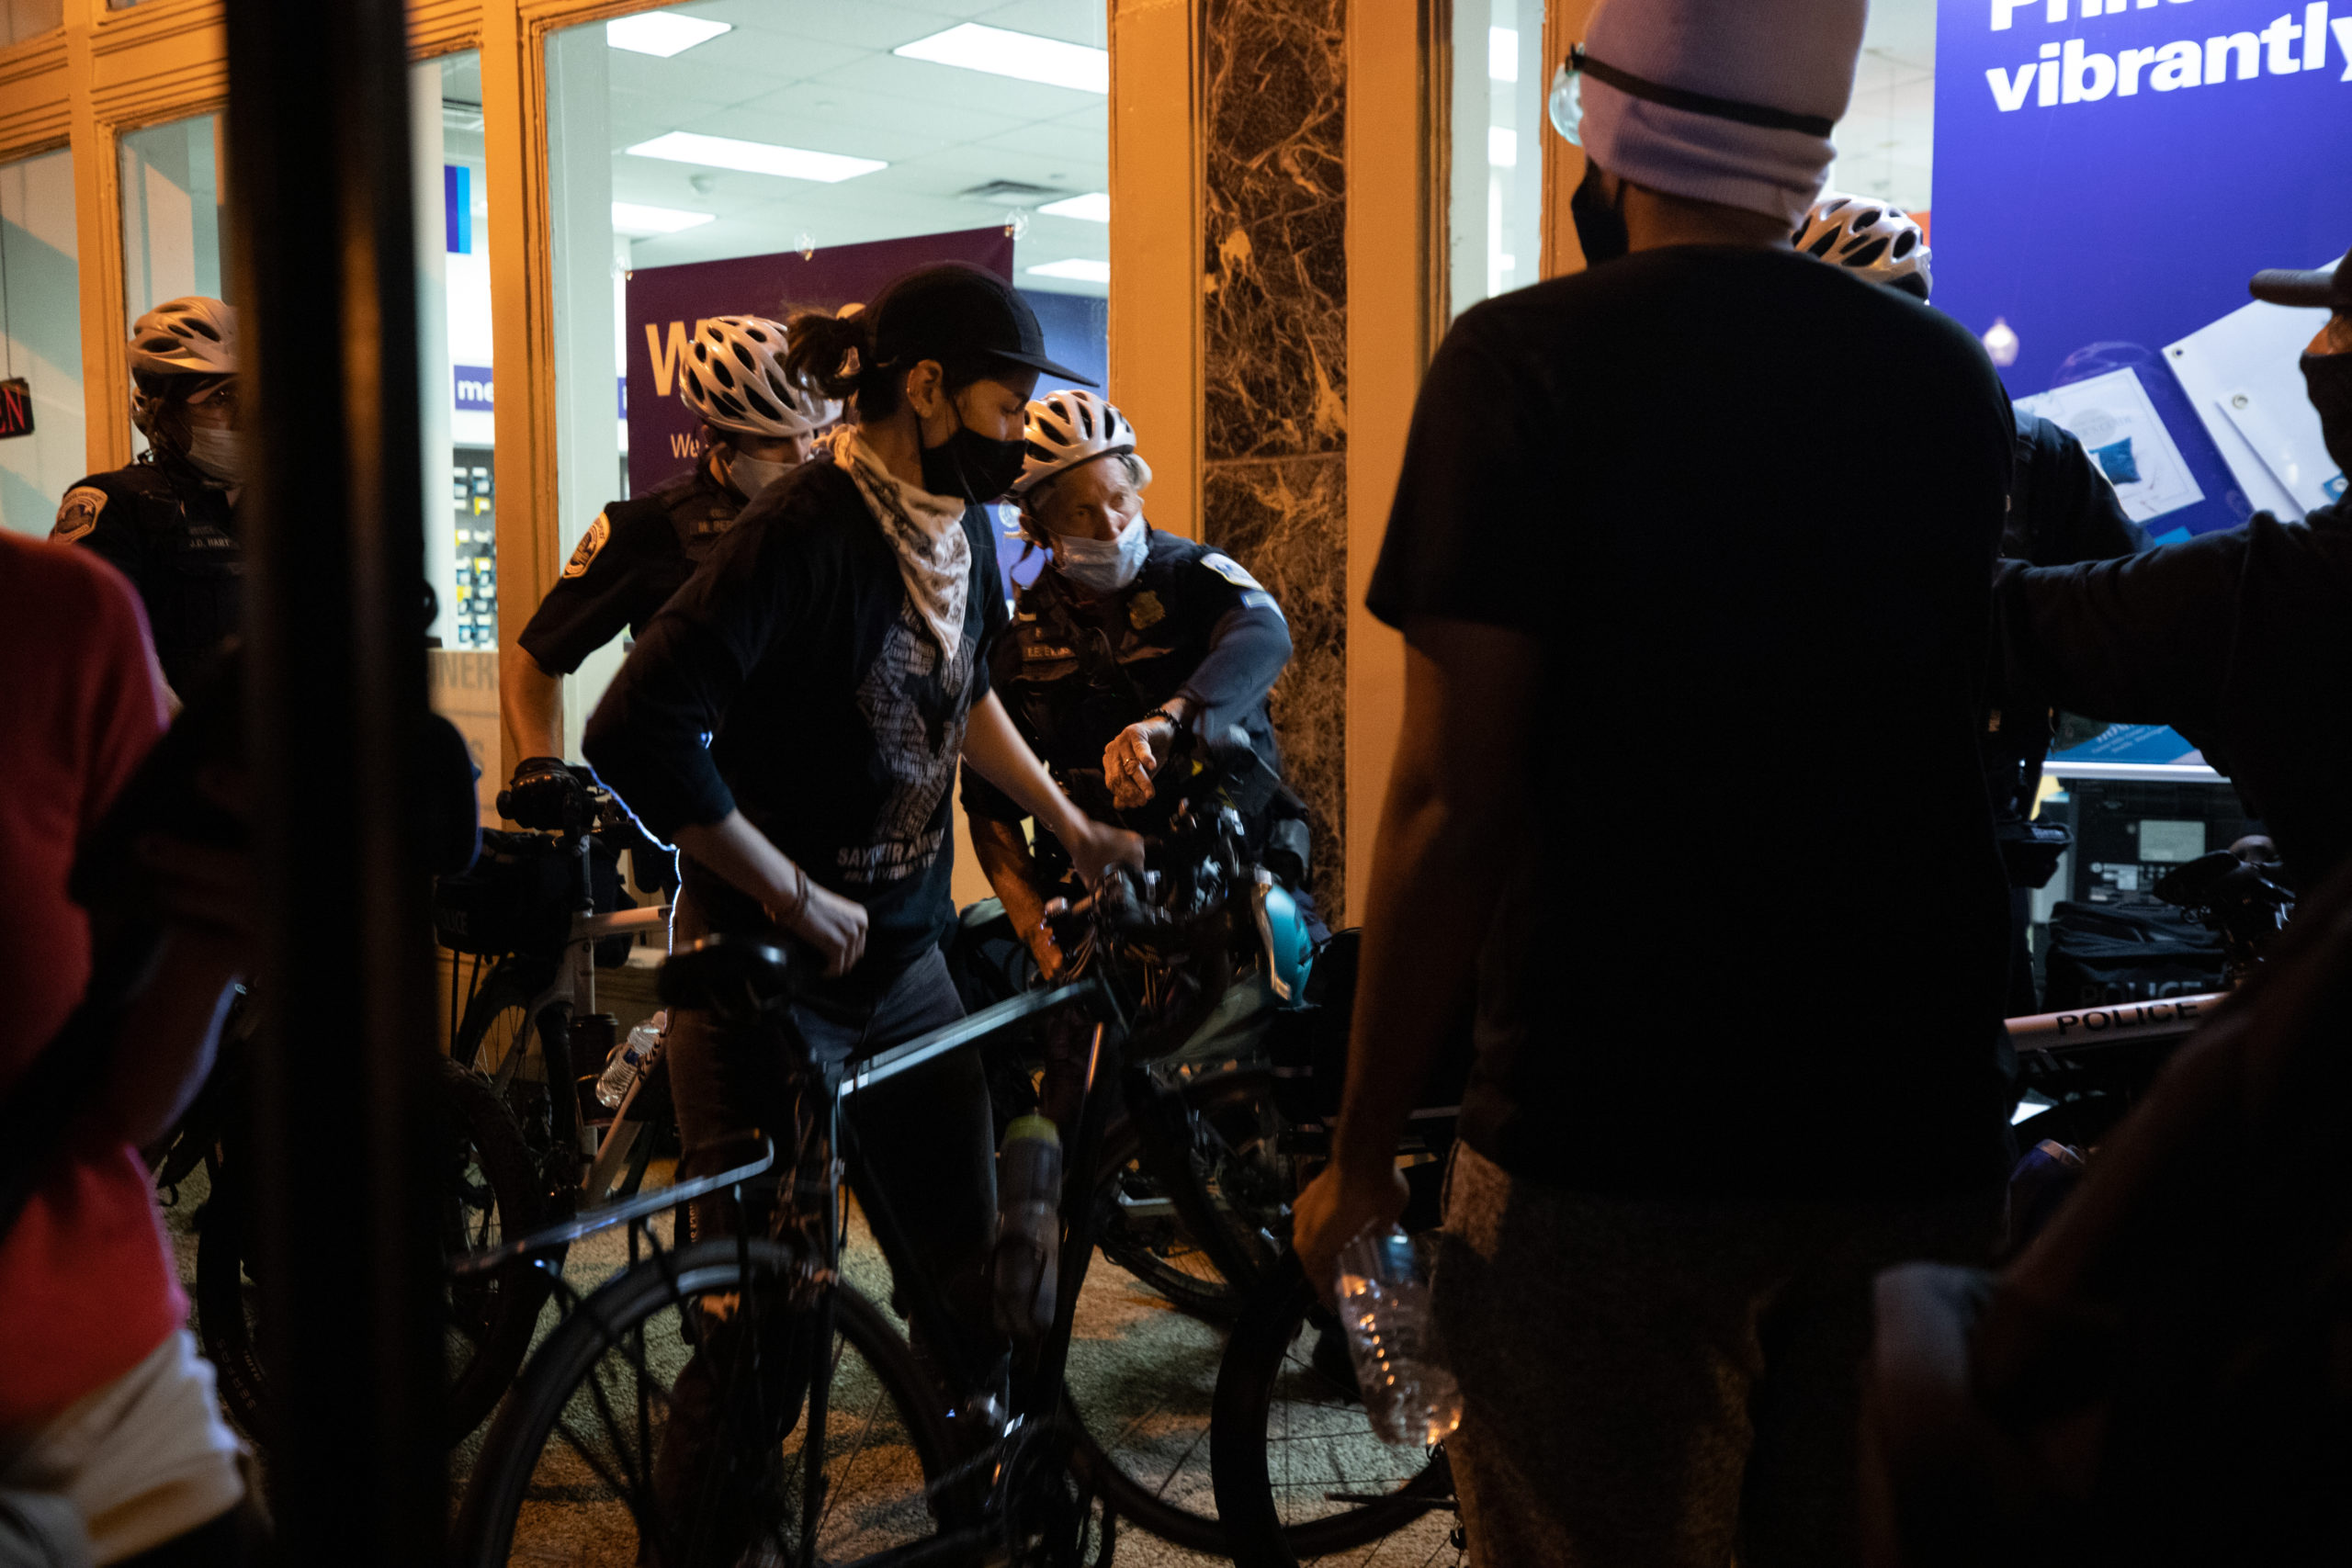 Protesters and Metropolitan Police Department officers briefly skirmished as officers tried to form a bike line between the protesters and shop windows in Washington, D.C. on Sept. 23. (Photo: Kaylee Greenlee / DCNF)